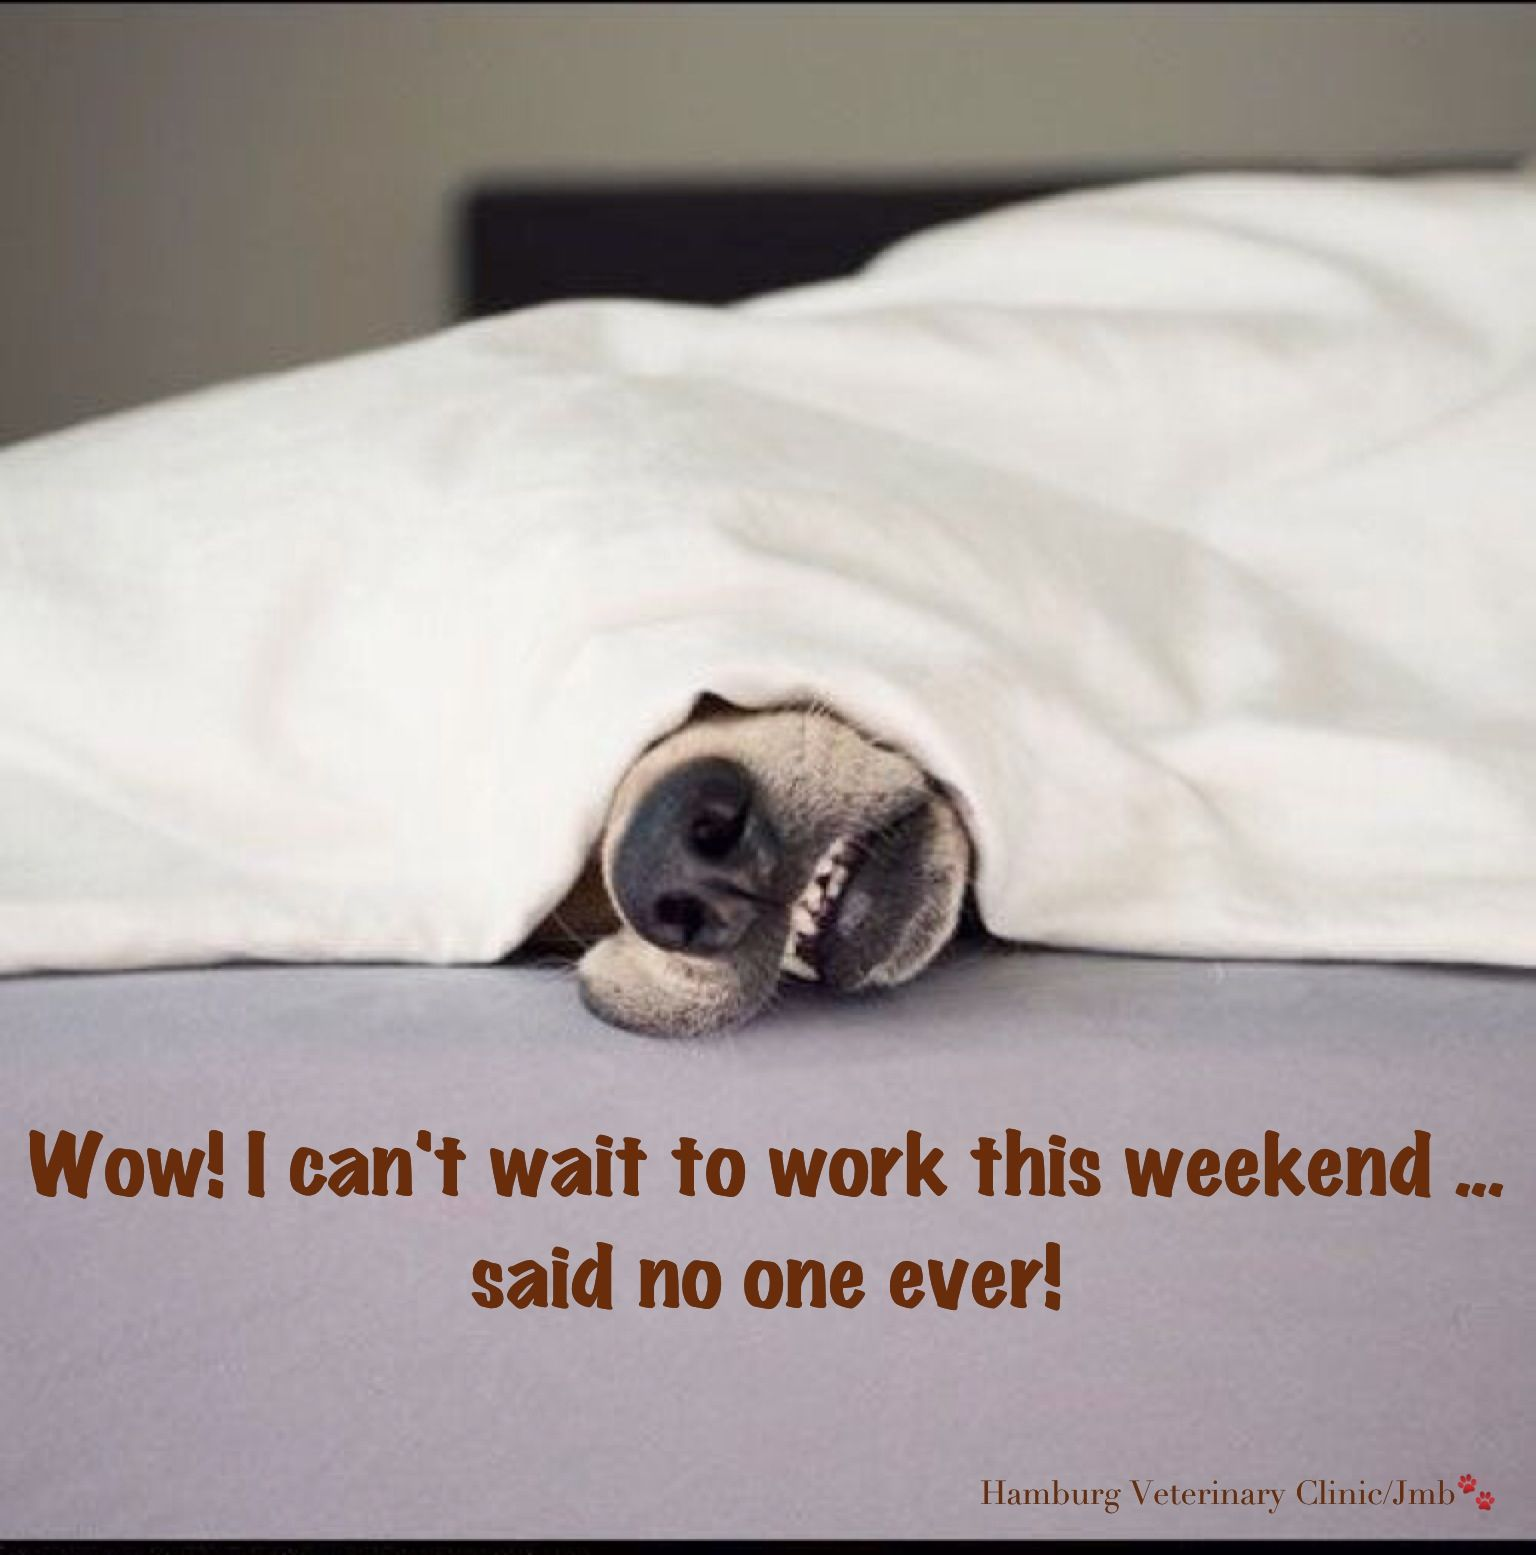 Working Weekends: It's finally the weekend. Hope you can enjoy it, however it may be spent!